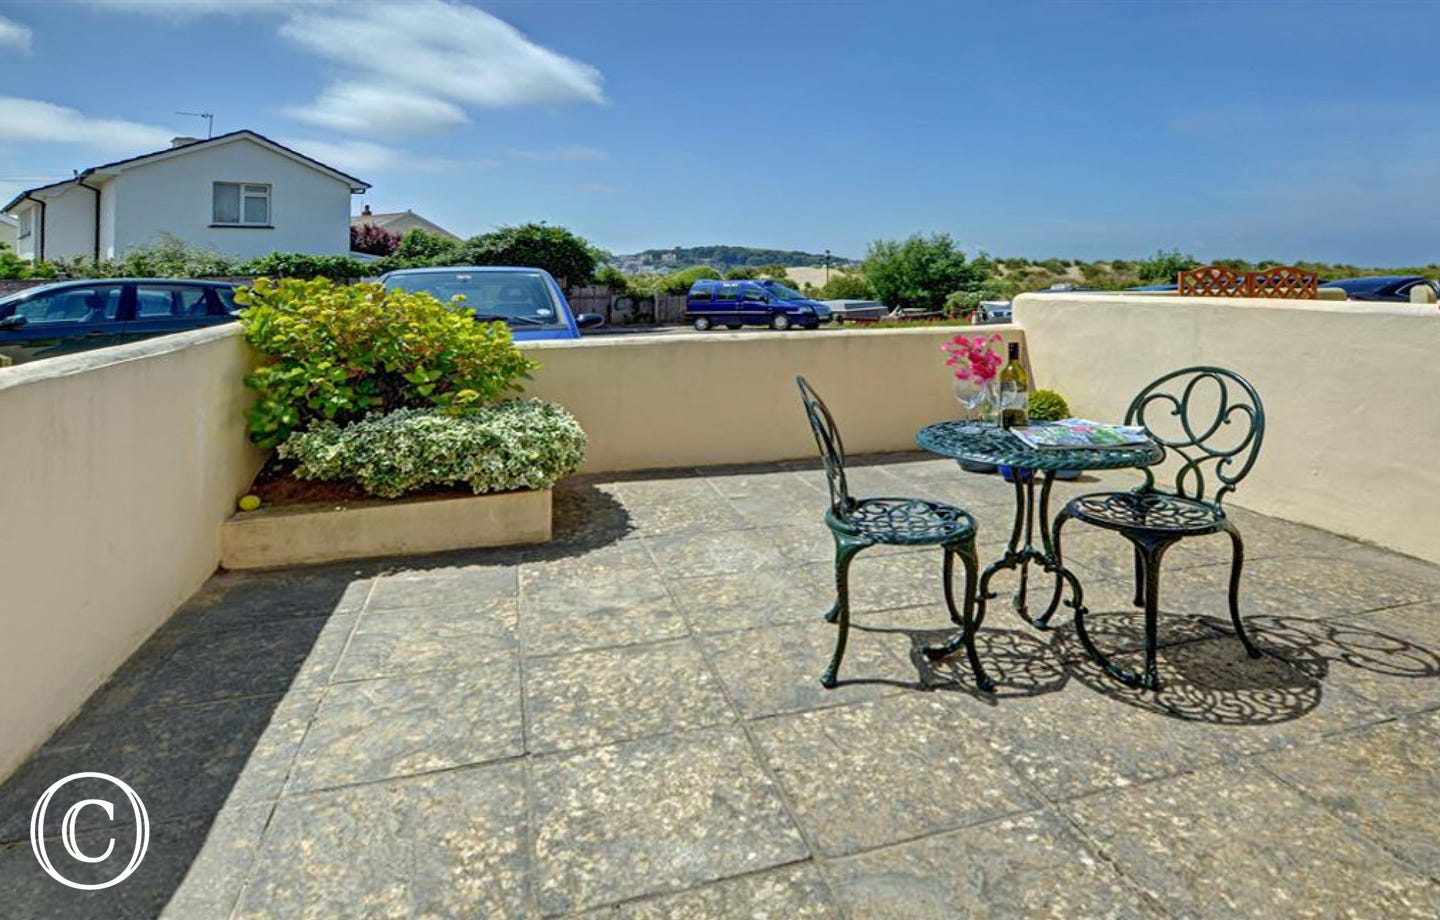 Outside there is a small fully enclosed patio where you can enjoy striking views across to Appledore and spectacular sunsets on balmy evenings